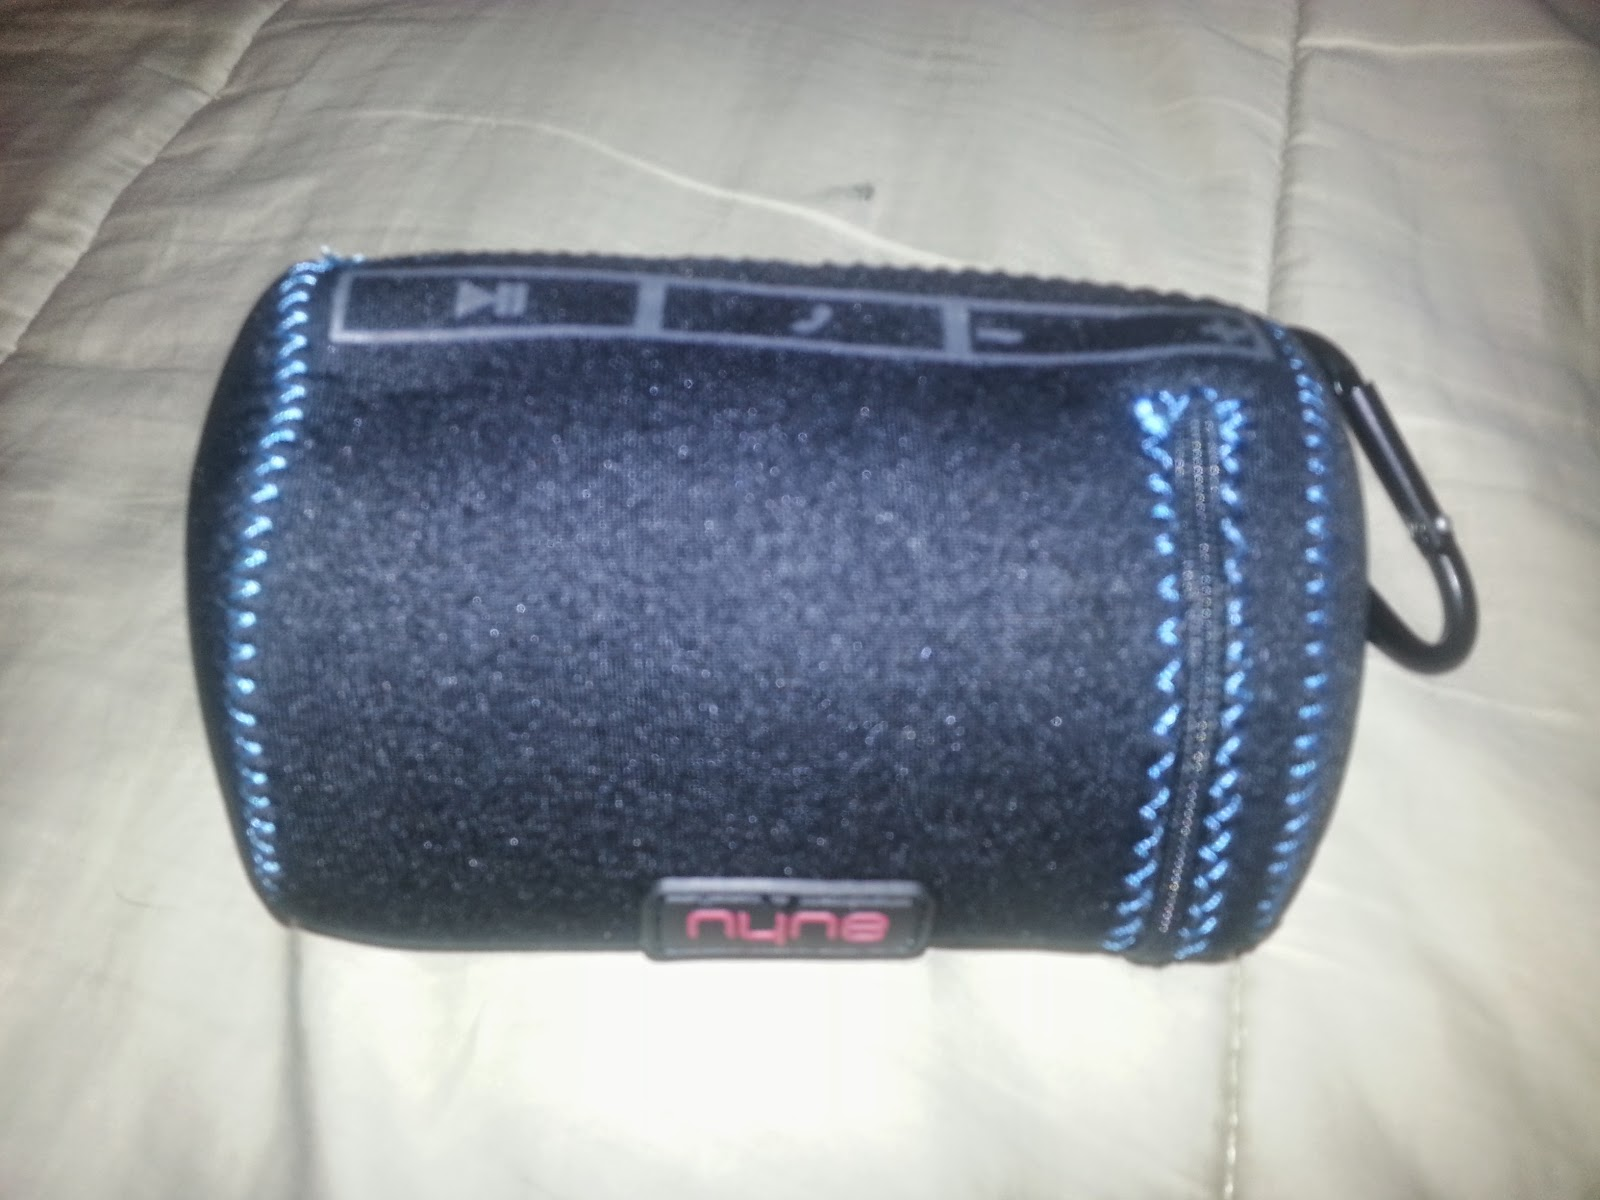 Nyne Mini Bluetooth Speaker Carrying Case